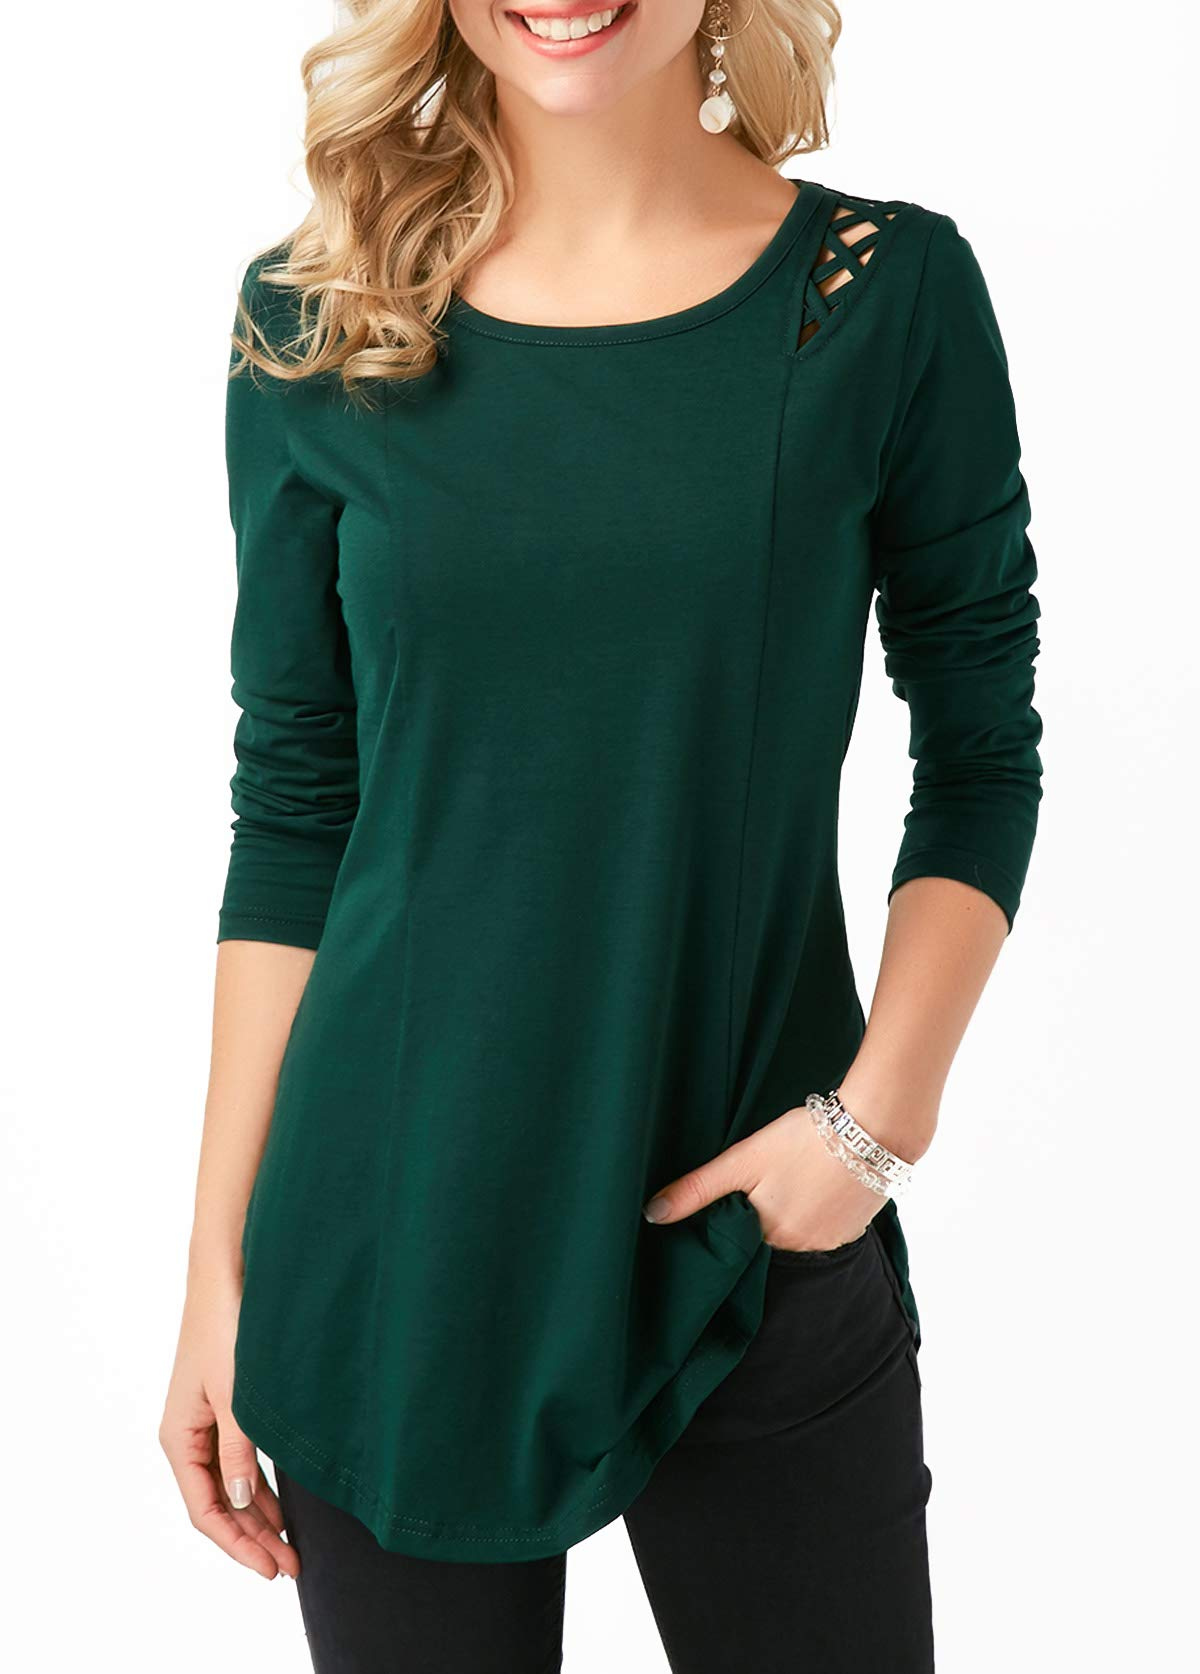 Ksnly Women's Long Sleeve Round Neck Tunic Casual Shirt Tops with Crisscross Detail